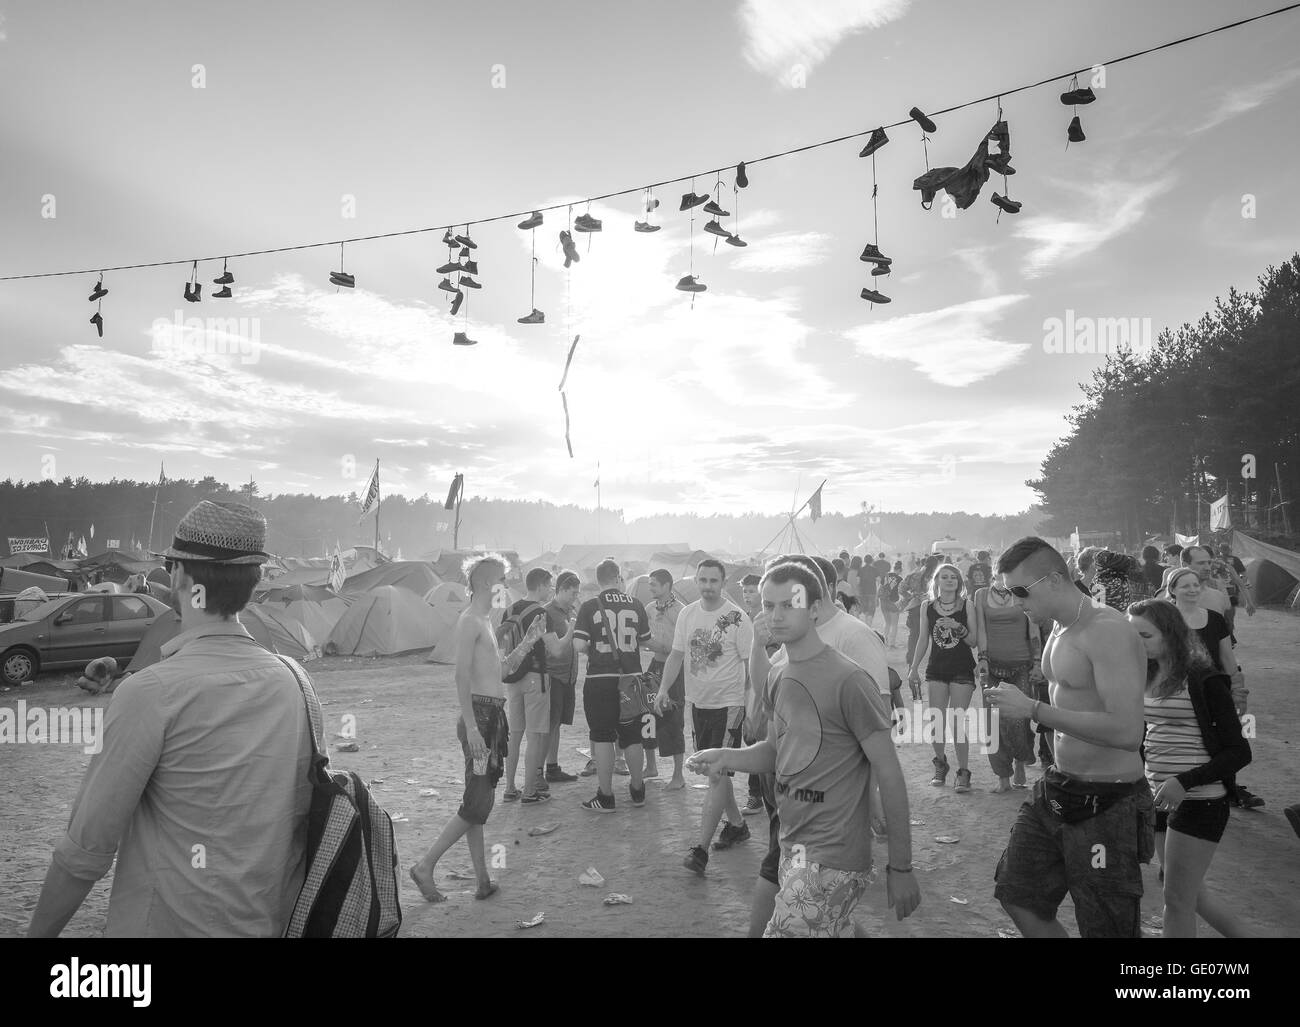 People walking to the main stage on the 21th Woodstock Festival Poland. - Stock Image